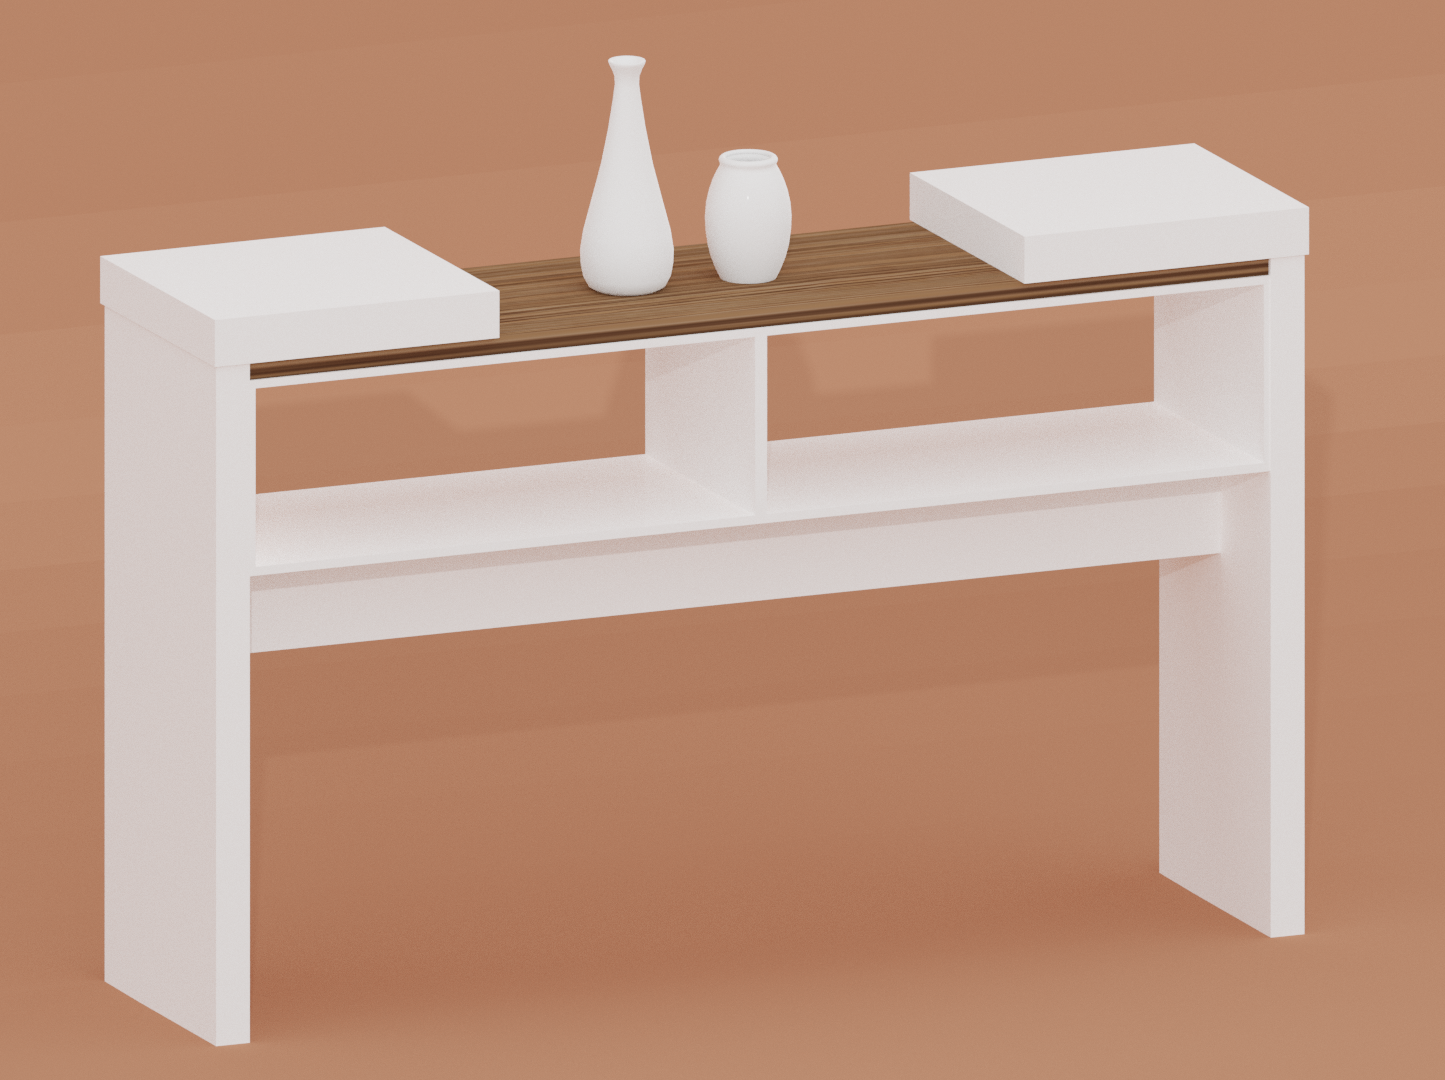 Simple Modern Desk preview image 1